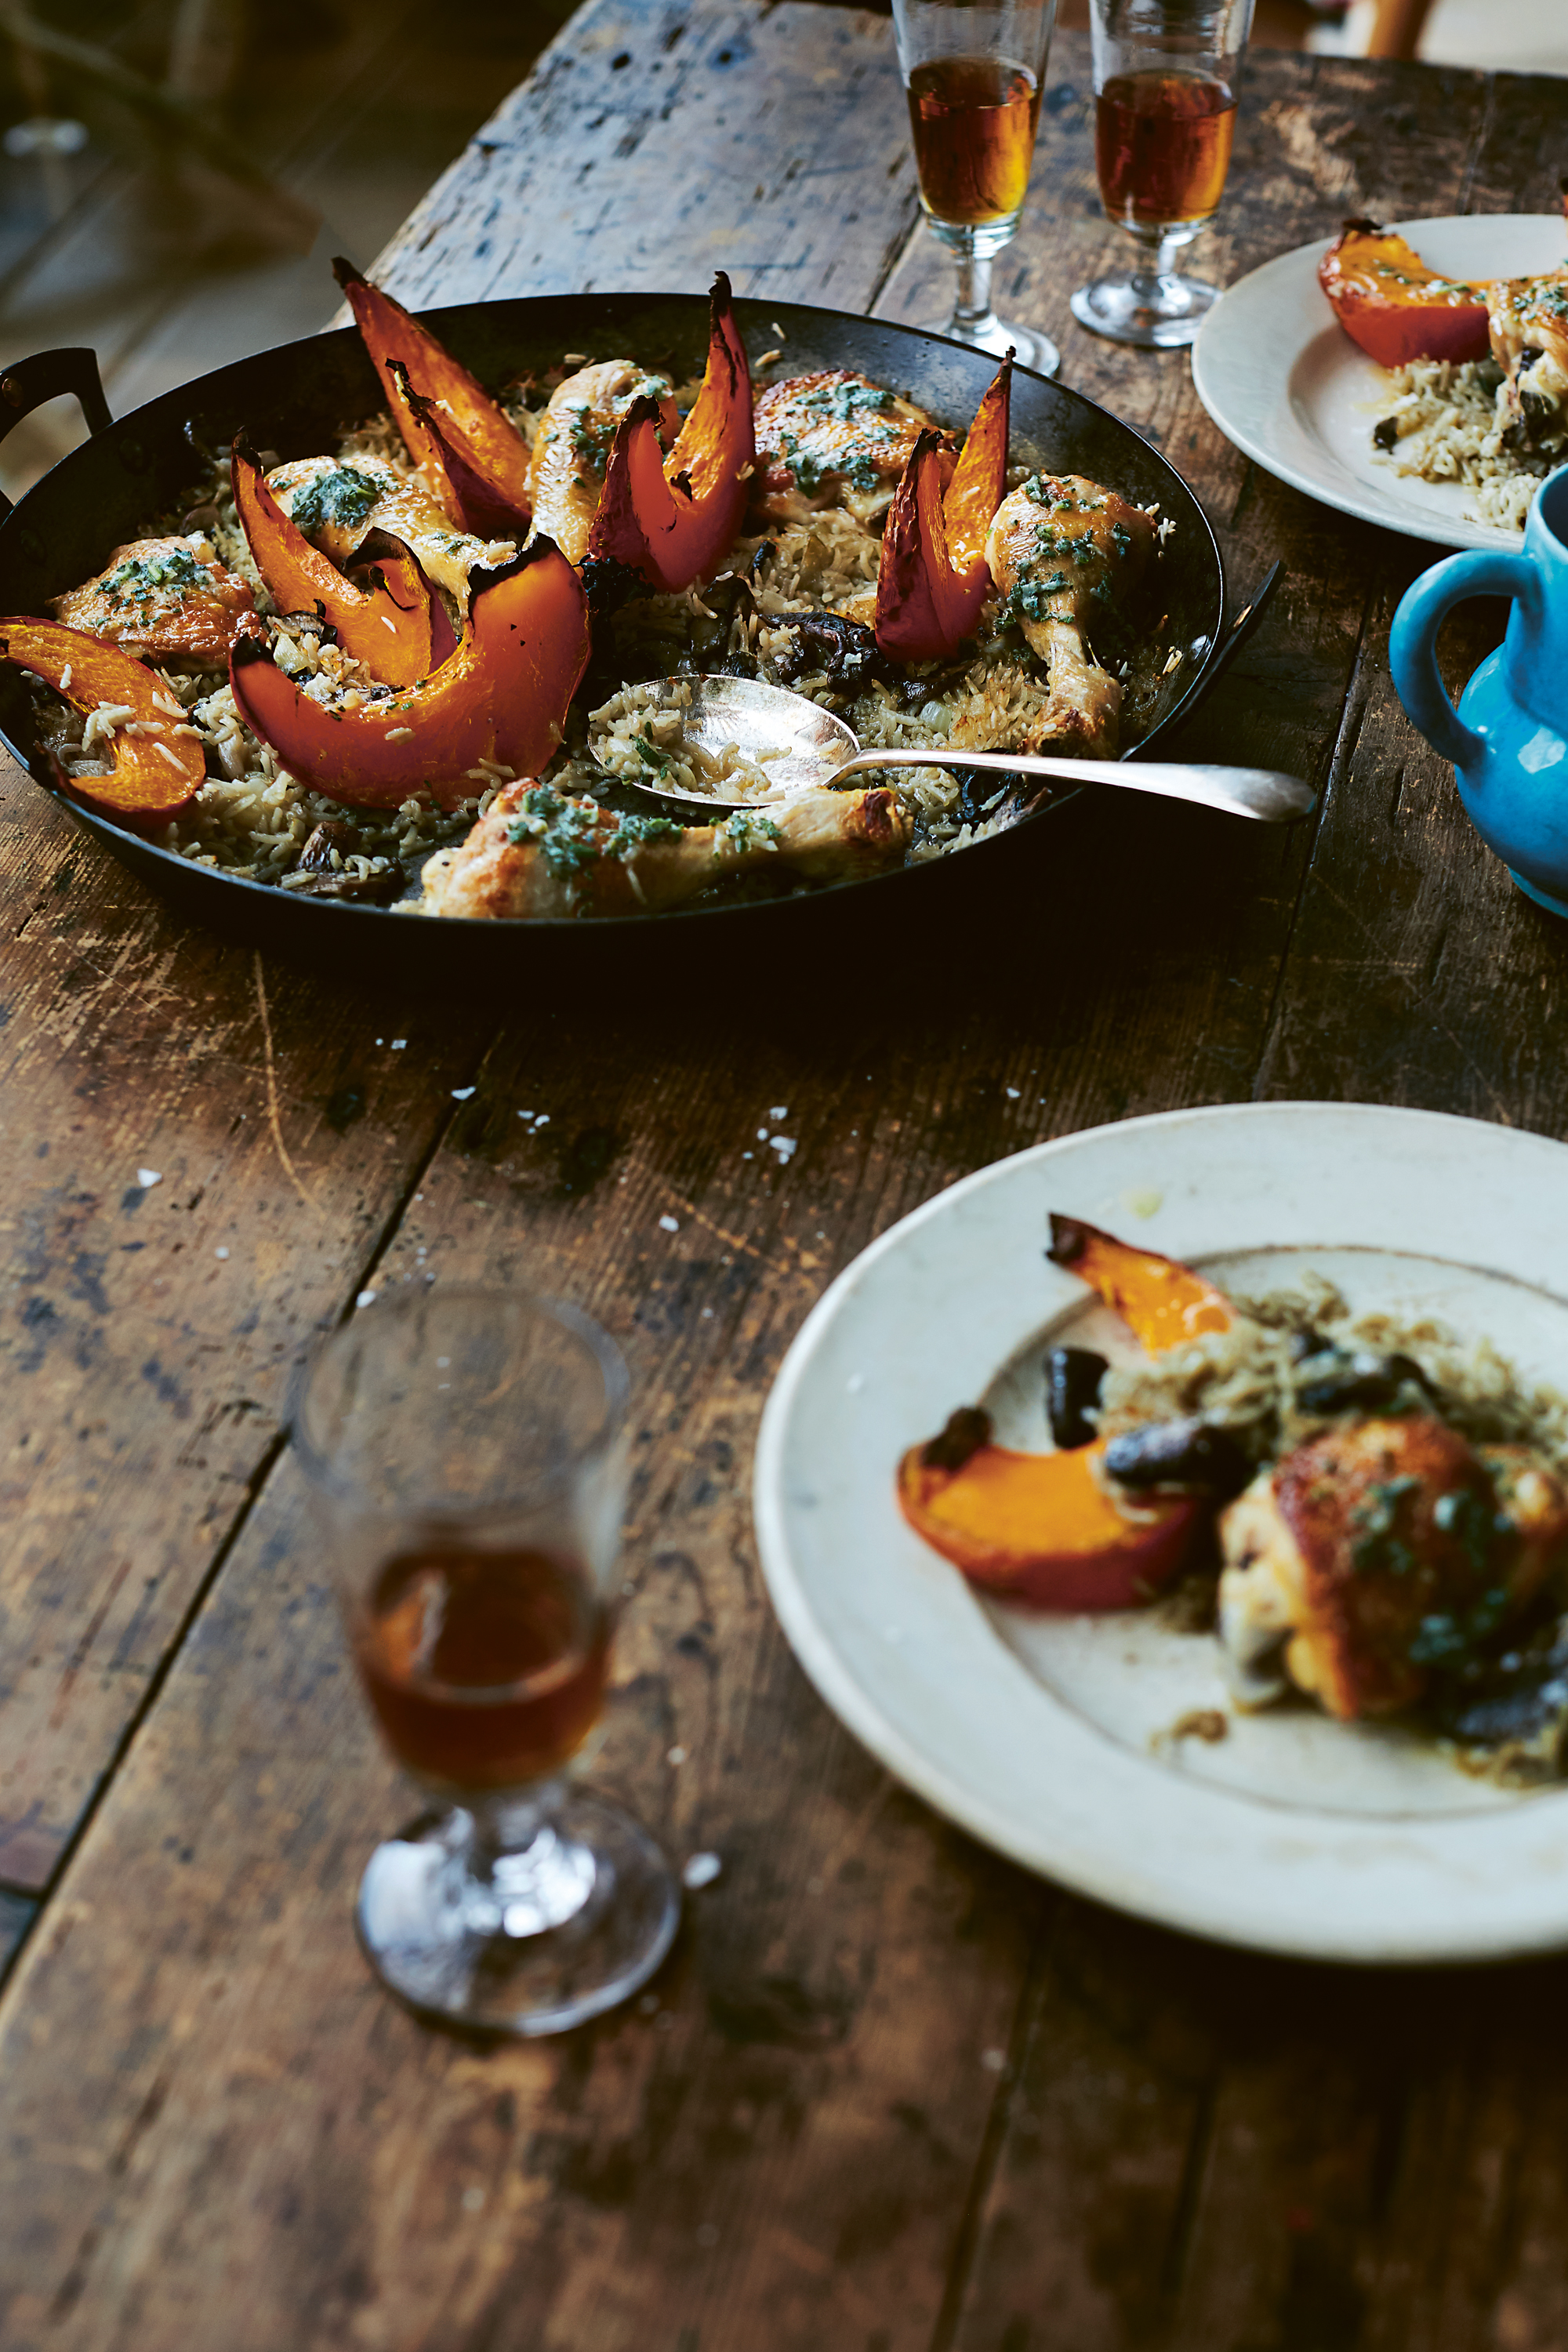 Chicken with wild mushrooms, pumpkin, rice and sage butter - From the Oven to the Table: Simple dishes that look after themselves by Diana Henry (Mitchell Beazley/Laura Edwards/PA)